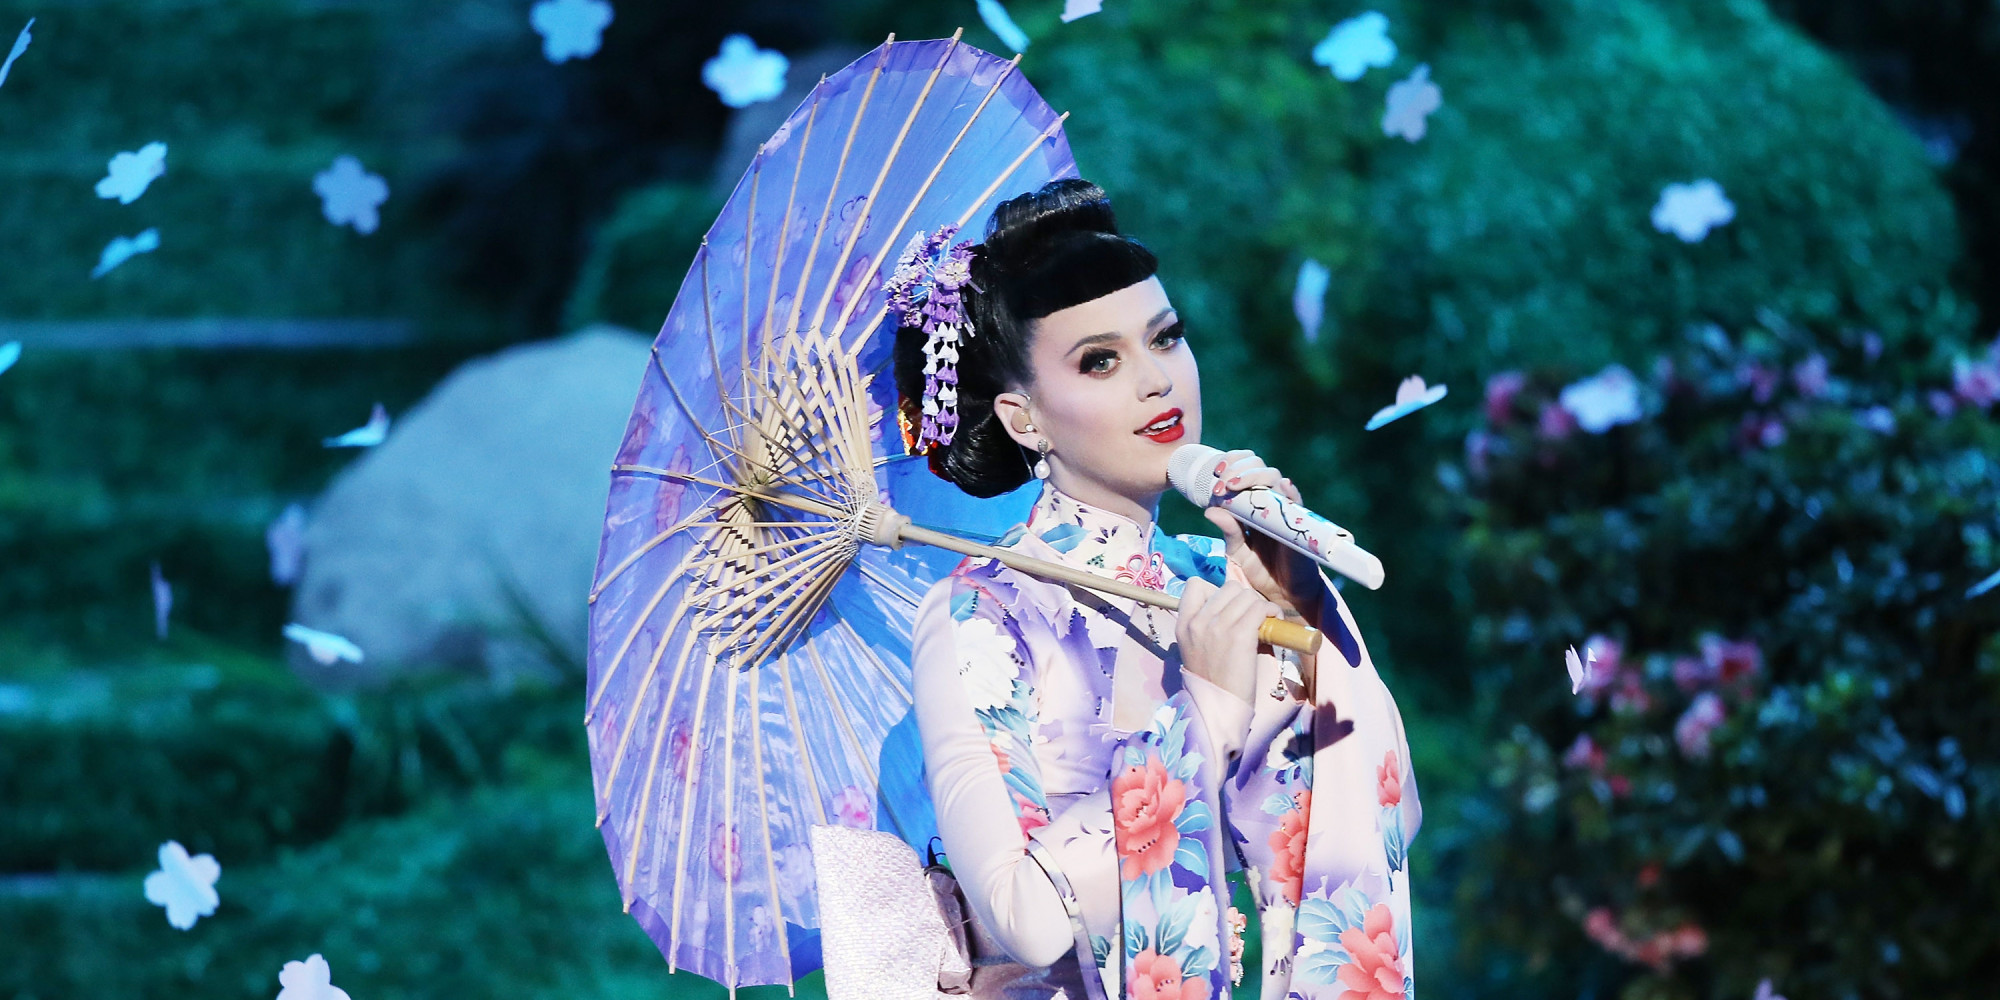 Cultural Appropriation 101 Featuring Geisha Katy Perry